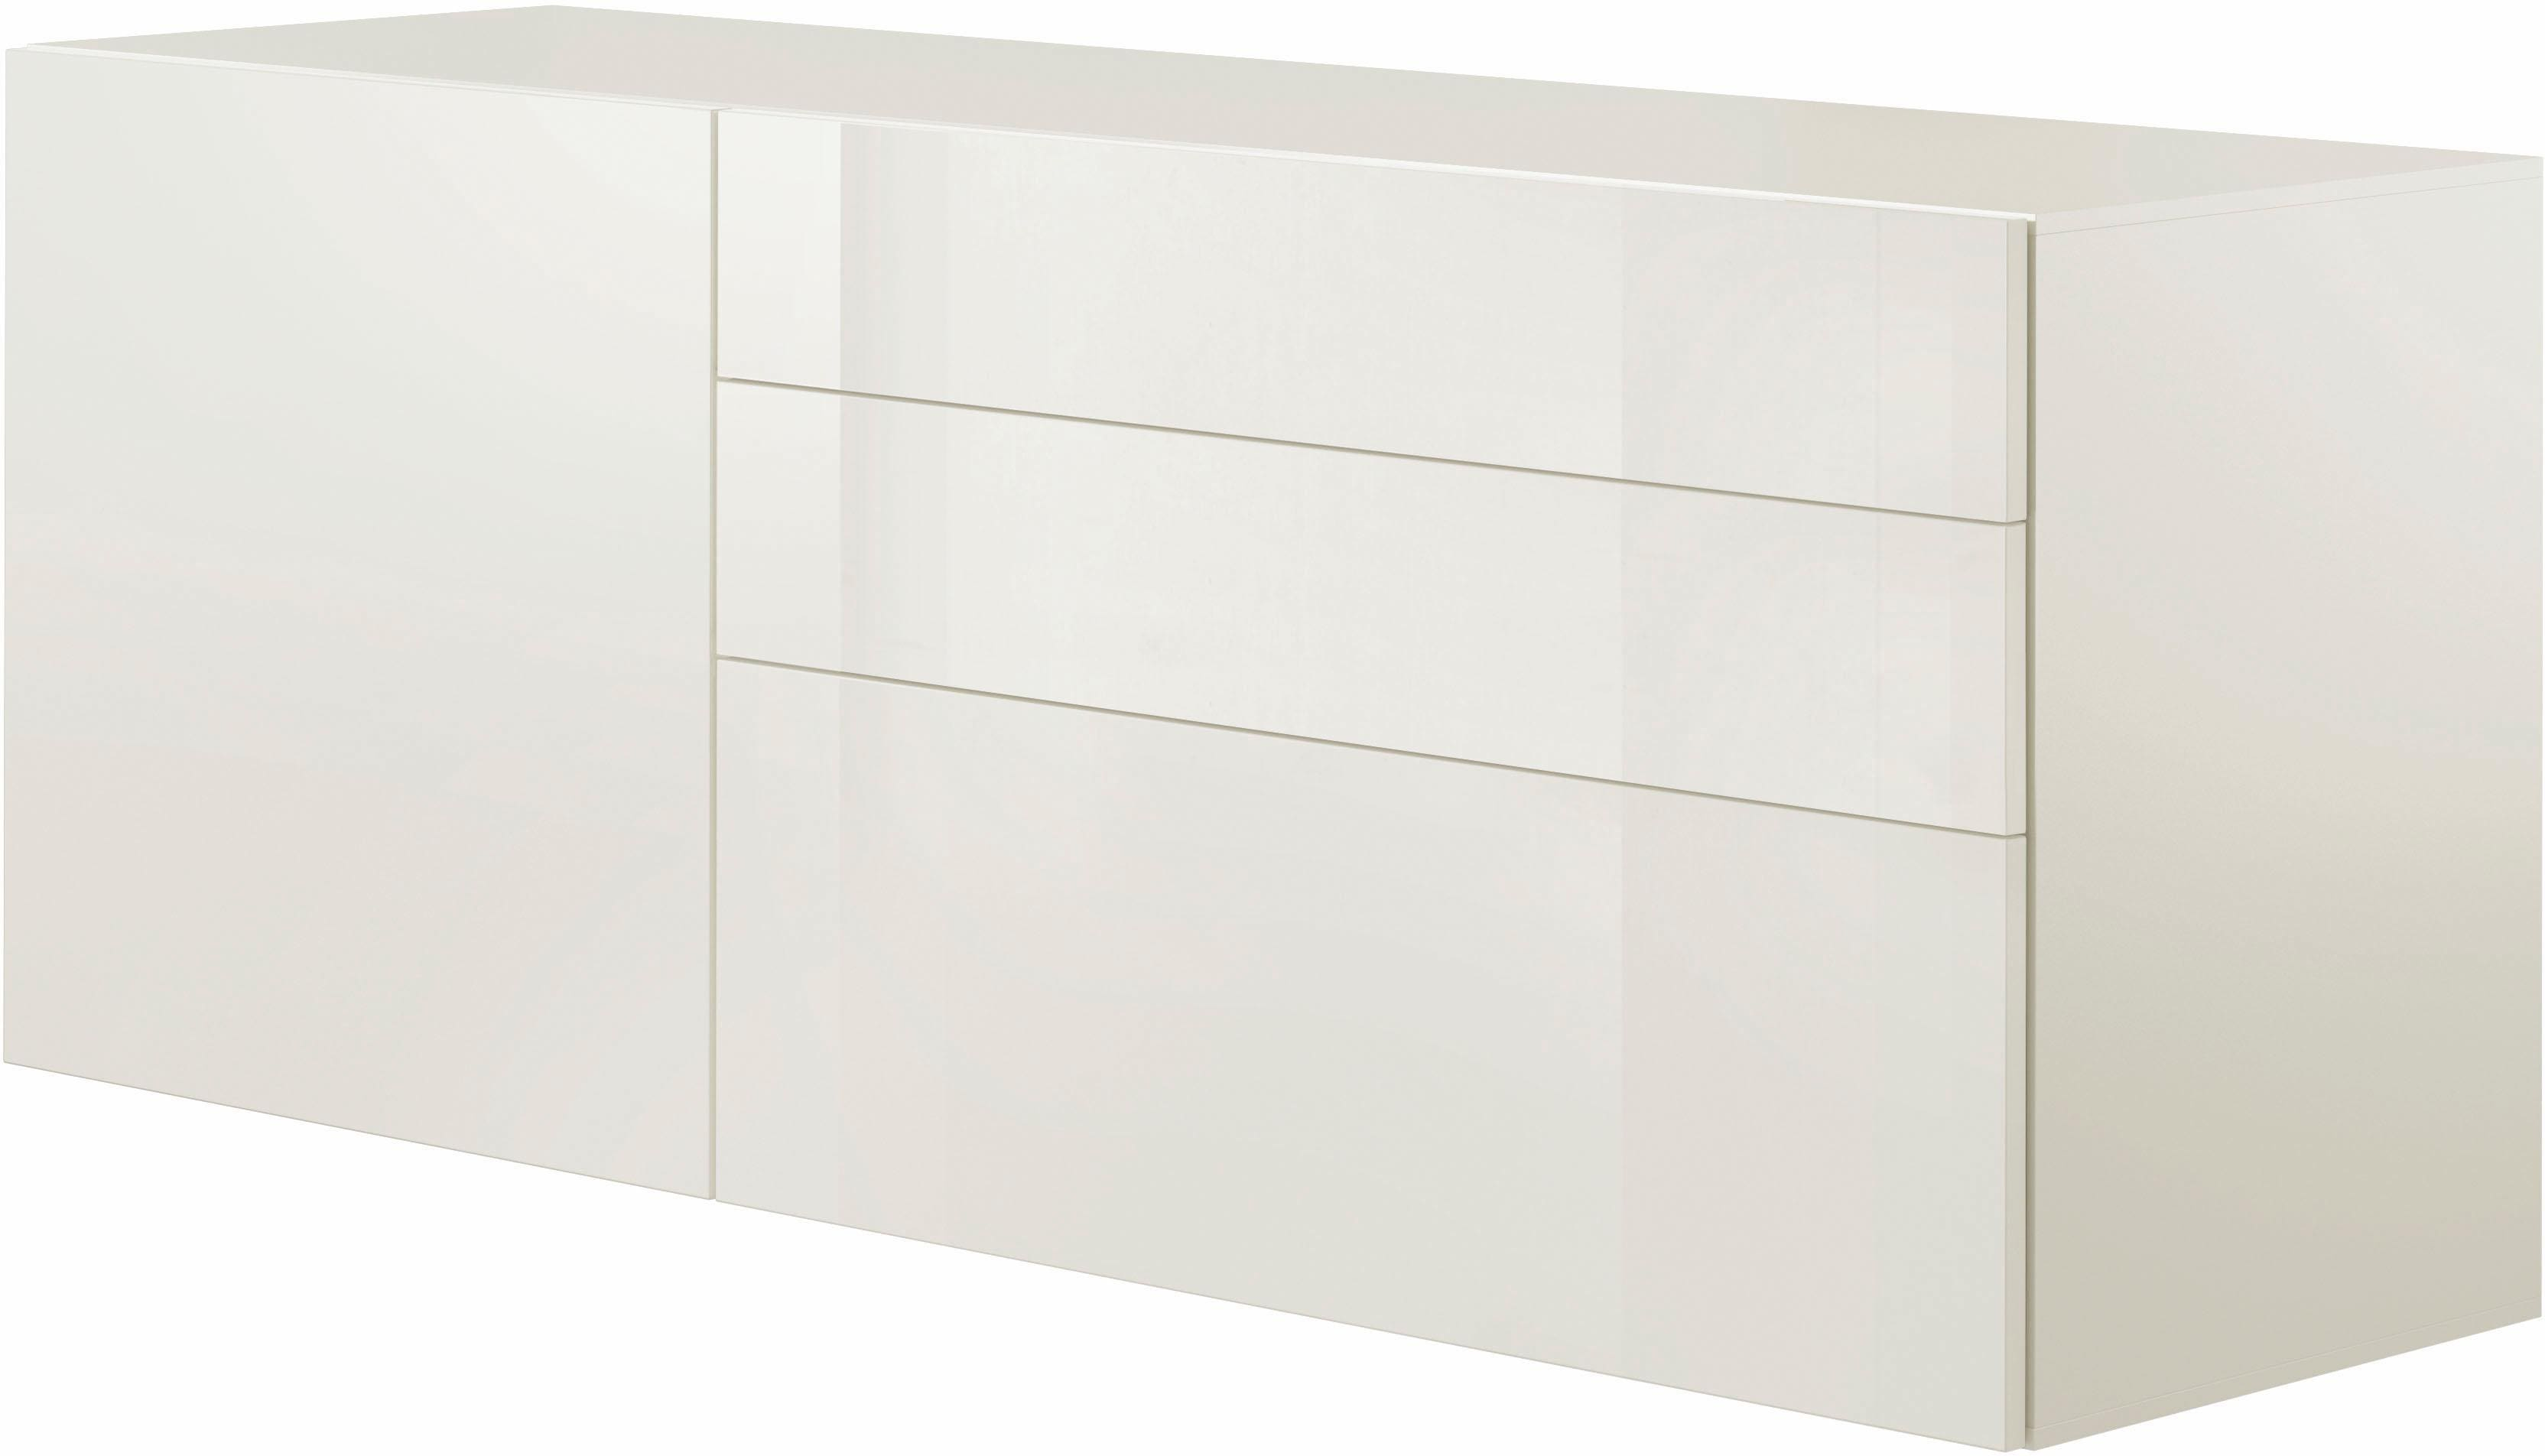 now! by hülsta Sideboard now! vision